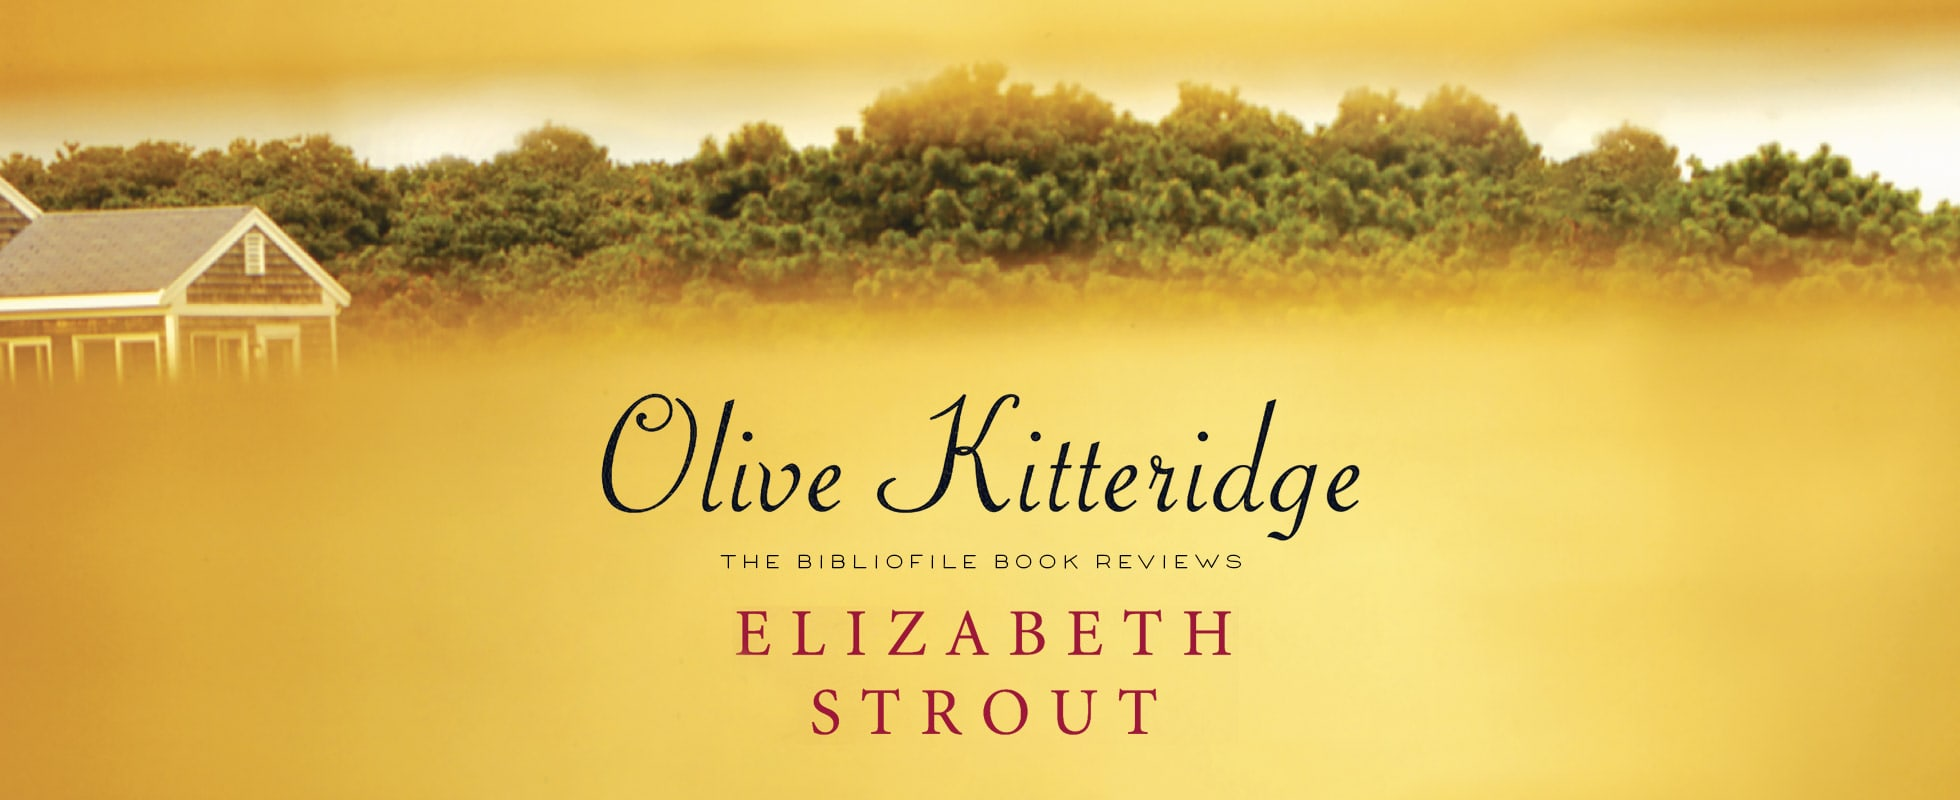 olive again elizabeth strout olive kitteridge book review summary synopsis